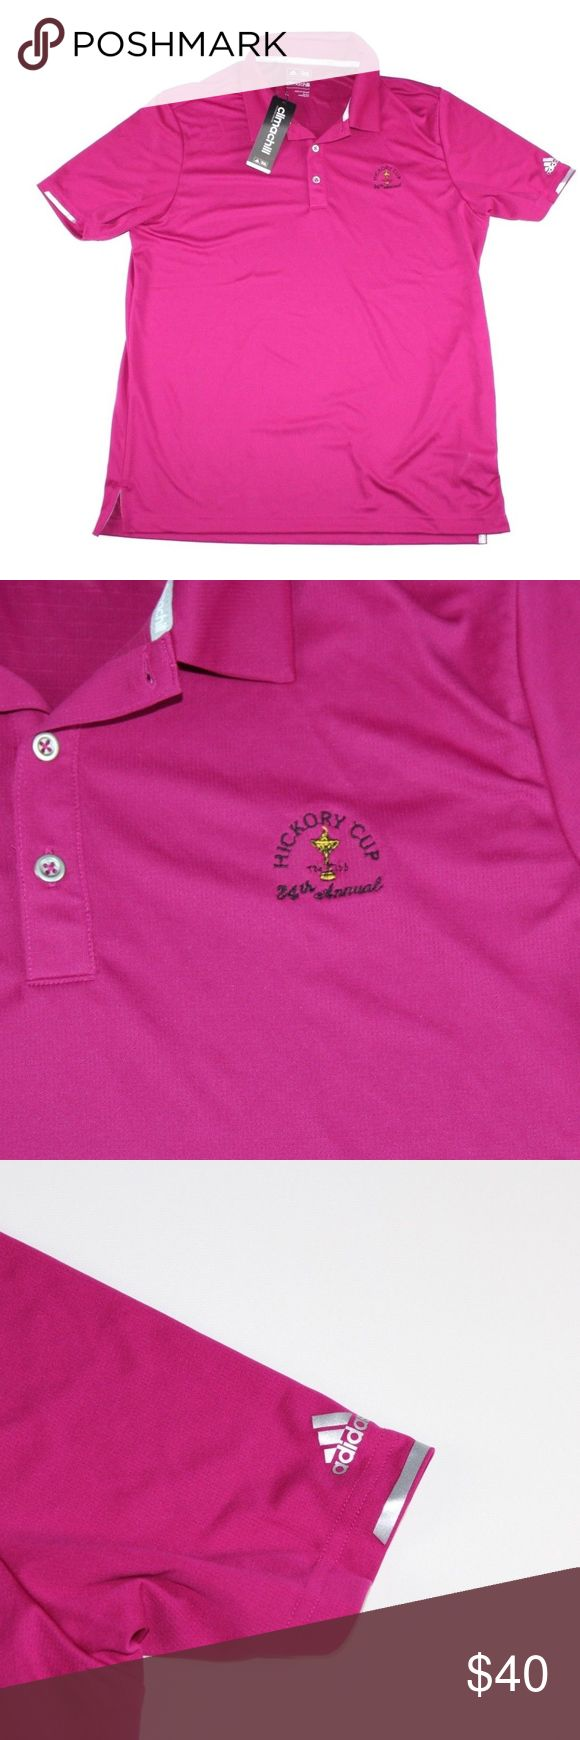 New Adidas ClimaChill Hickory Cup PGA Golf Polo Adidas Hickory Cup ClimaChill Golf Polo  Polo  New  The size is Large and the measurements are 24 inches pit to pit and 30 inches shoulder to base.  Magenta  Polyester  Check out my other items in my store!  L1 adidas Shirts Polos